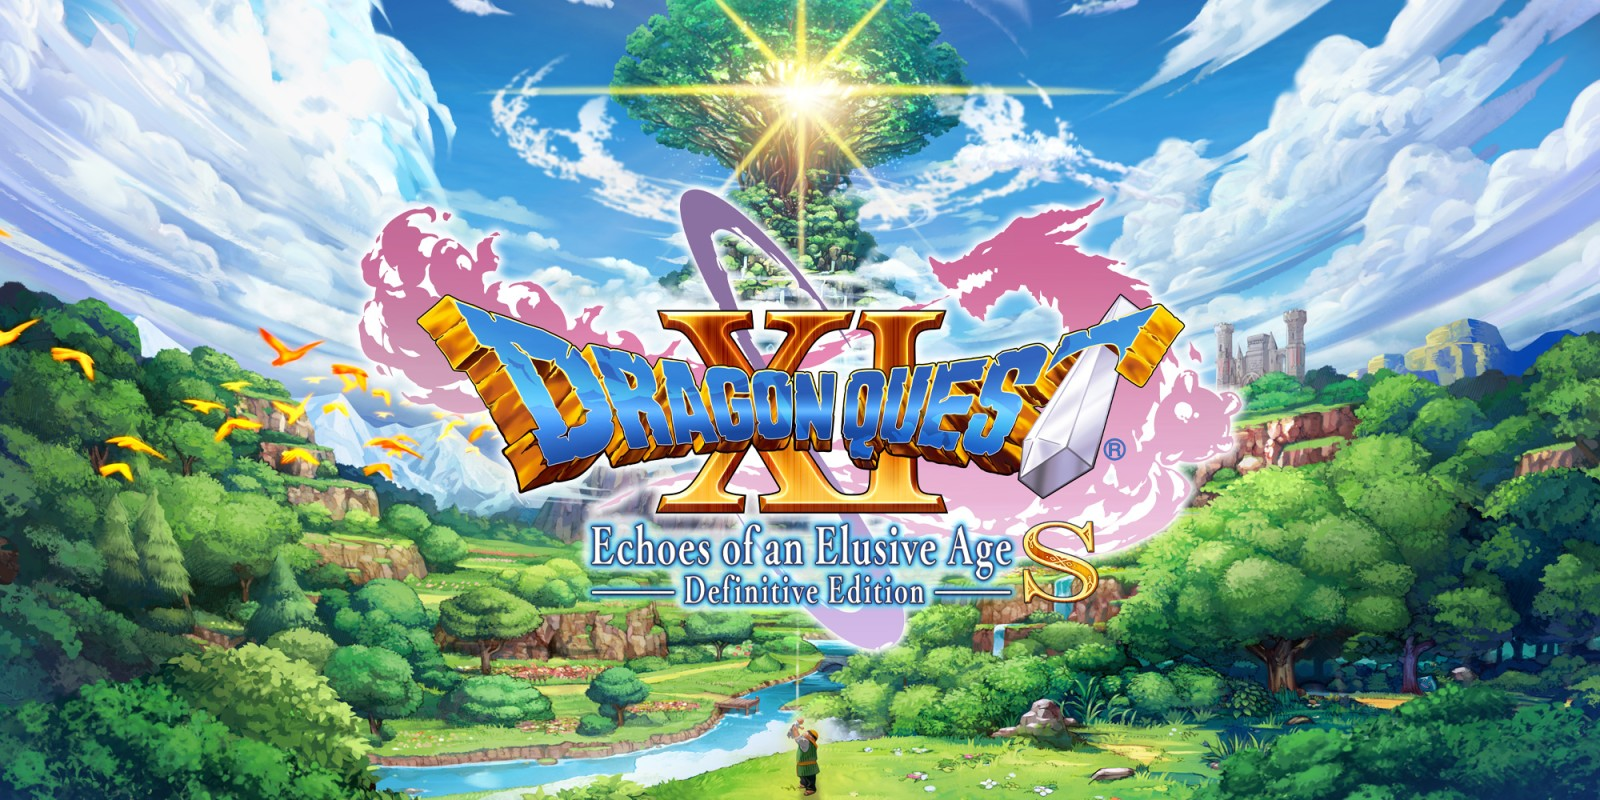 Dragon Quest Then & Now – Echoes Through the Ages – full Dragon Quest XI S PAX West 2019 panel